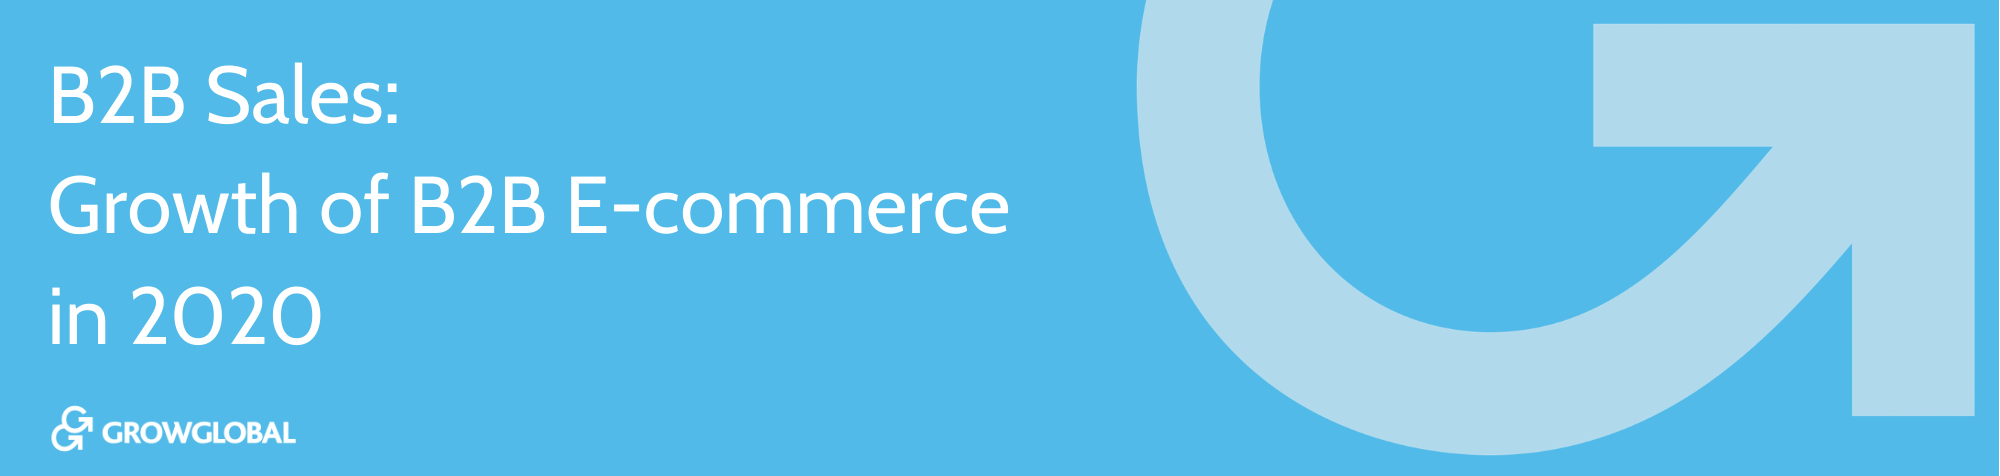 B2B Sales: Growth of B2B E-commerce in 2020